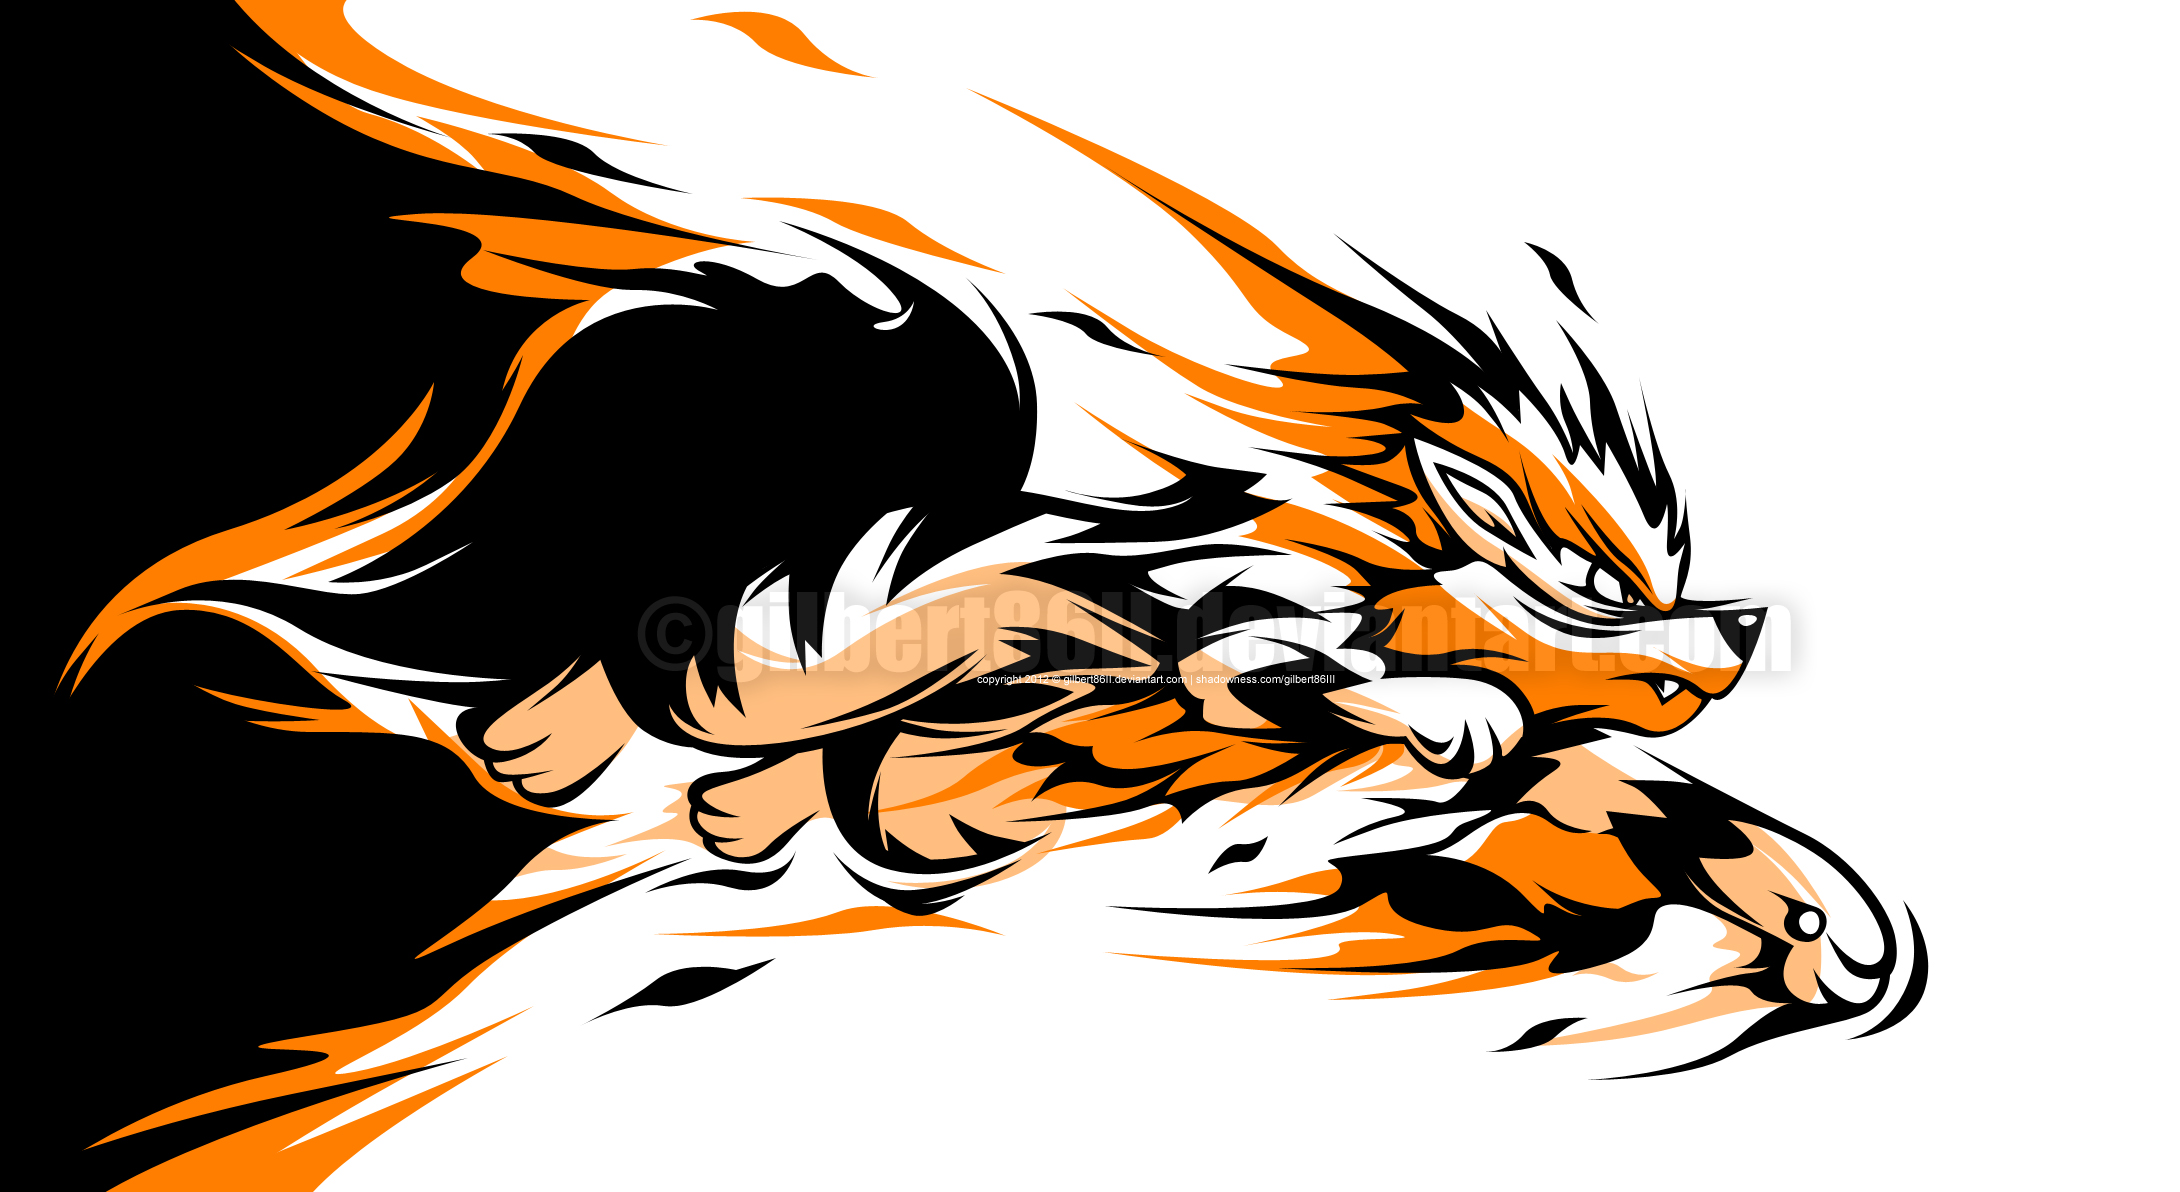 Arcanine 39 s flame by gilbert86ii on deviantart - Arcanine pics ...